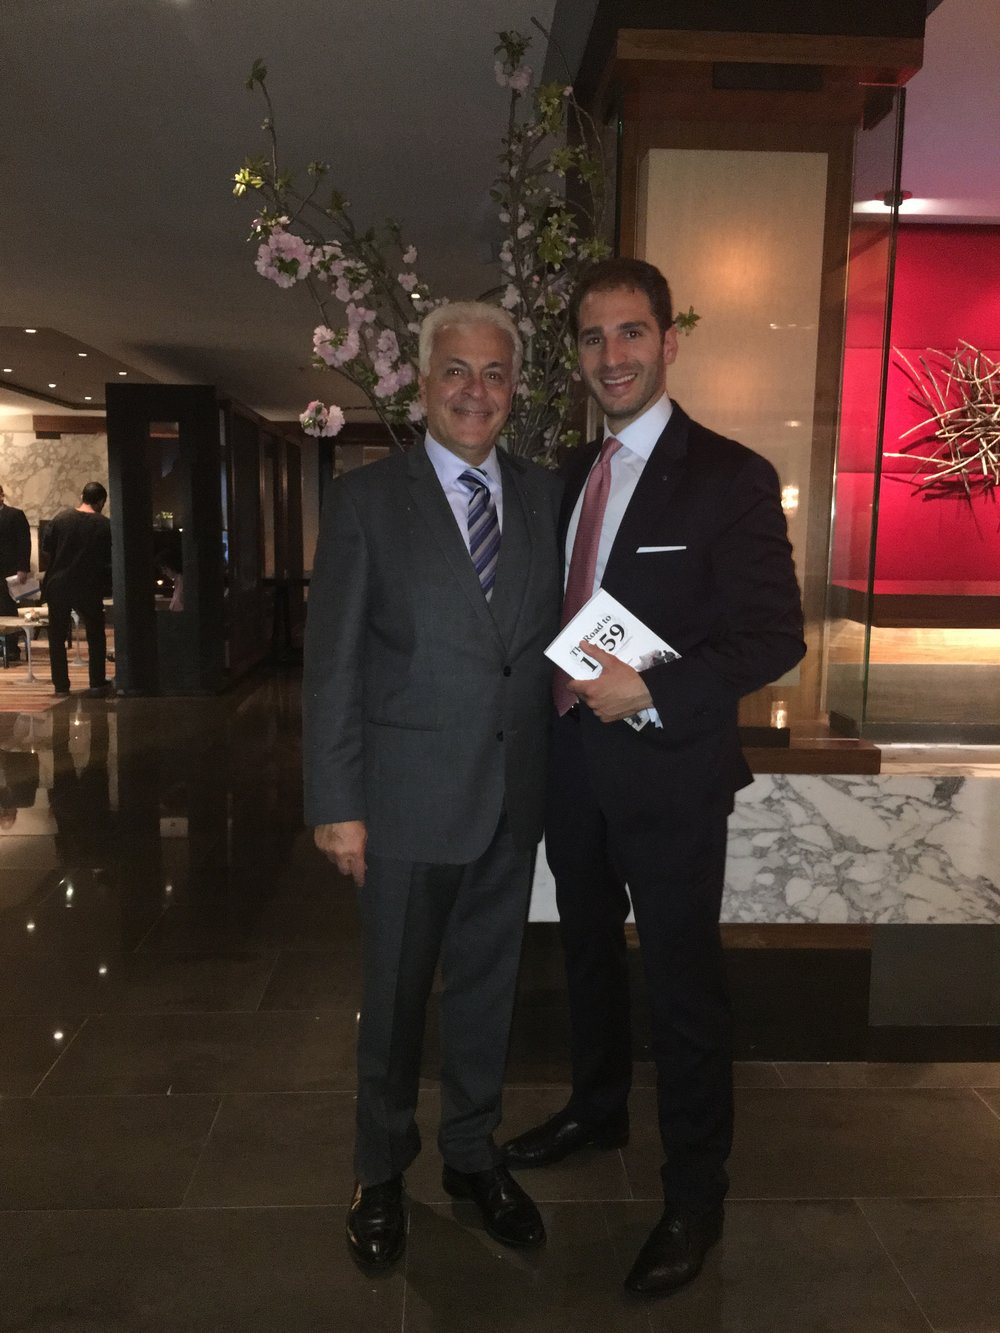 Paul Klimos with The Honorable Walid Maalouf